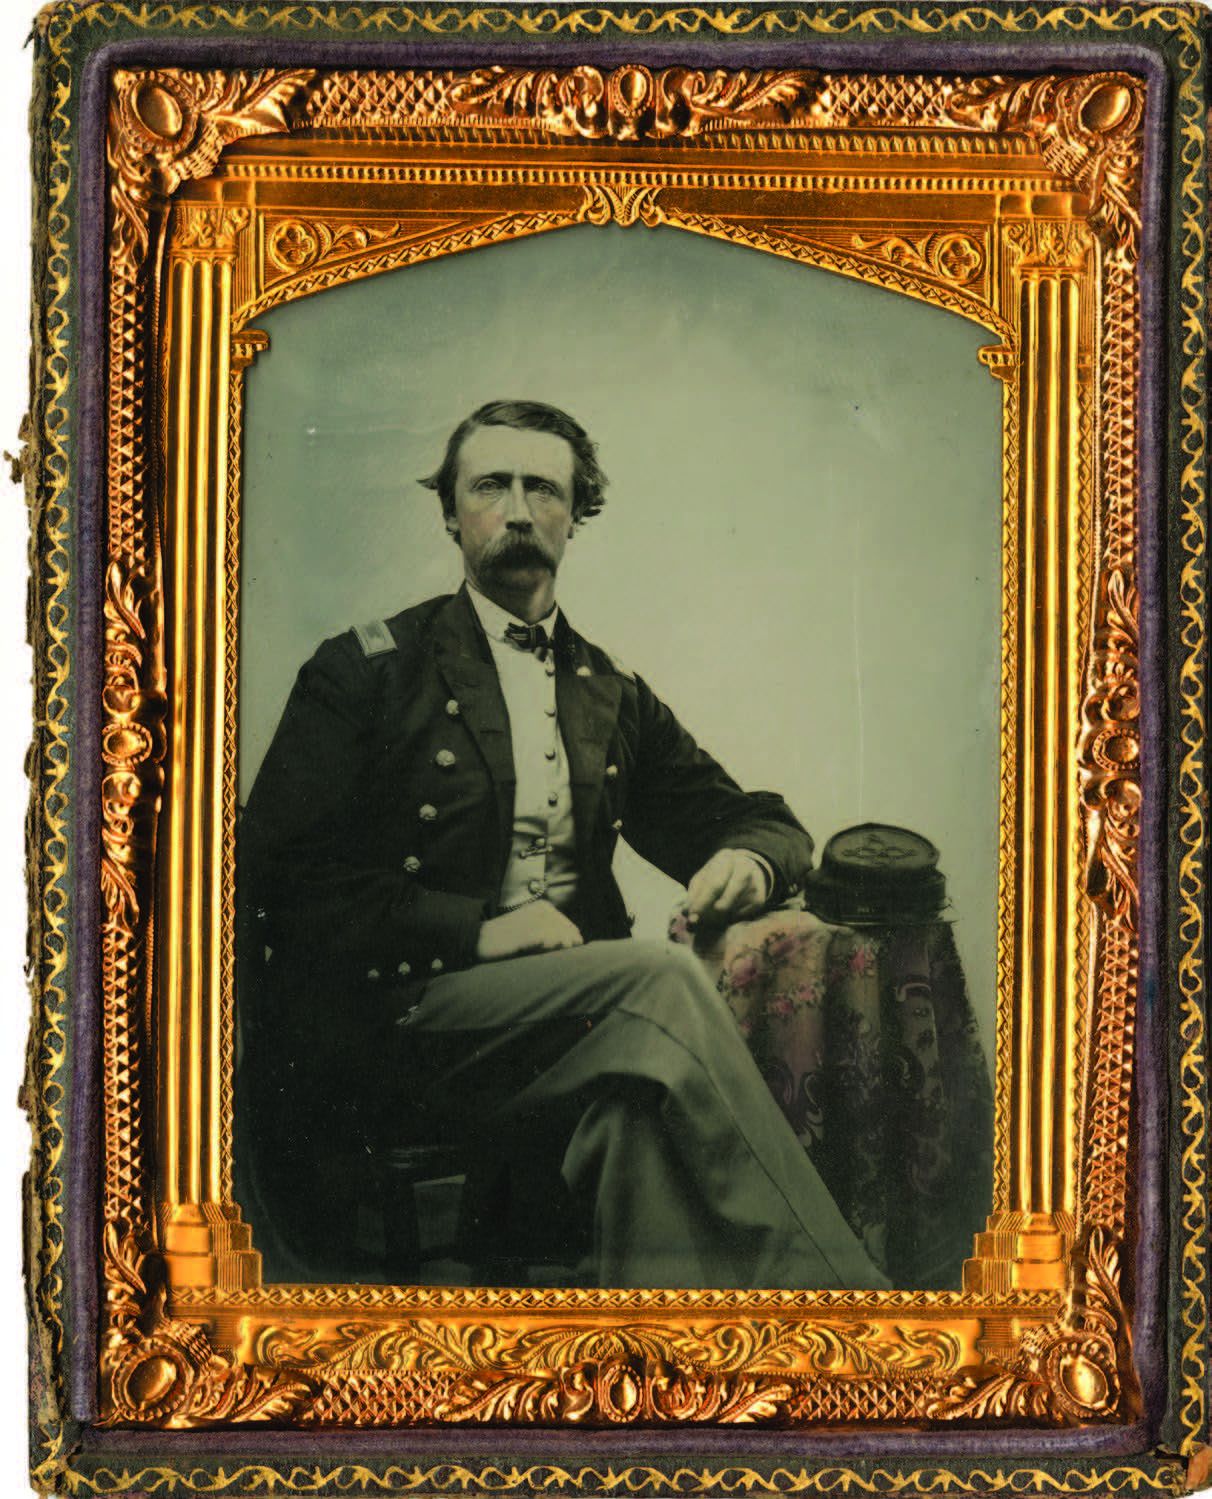 Unidentified Union Army officer. Hand-tinted half-plate ambrotype, ca. Civil War era. Palace of the Governors Photo Archives (NMHM/DCA), Neg. No. HP.2011.35.1.